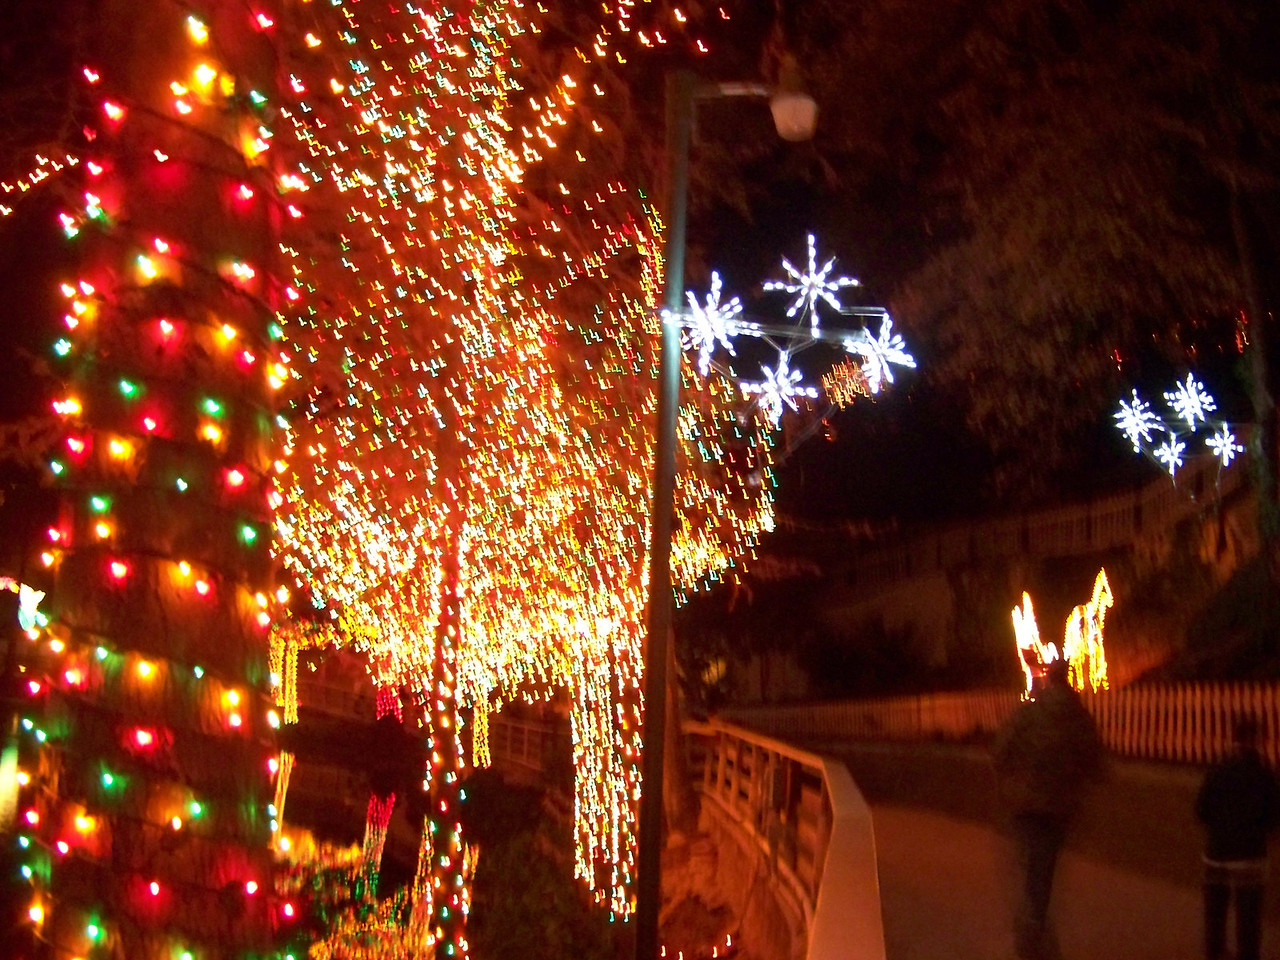 More lights along the path on the bank of the Comal River.<br /> [Schlitterbahn's Hill Country Christmas 2009]